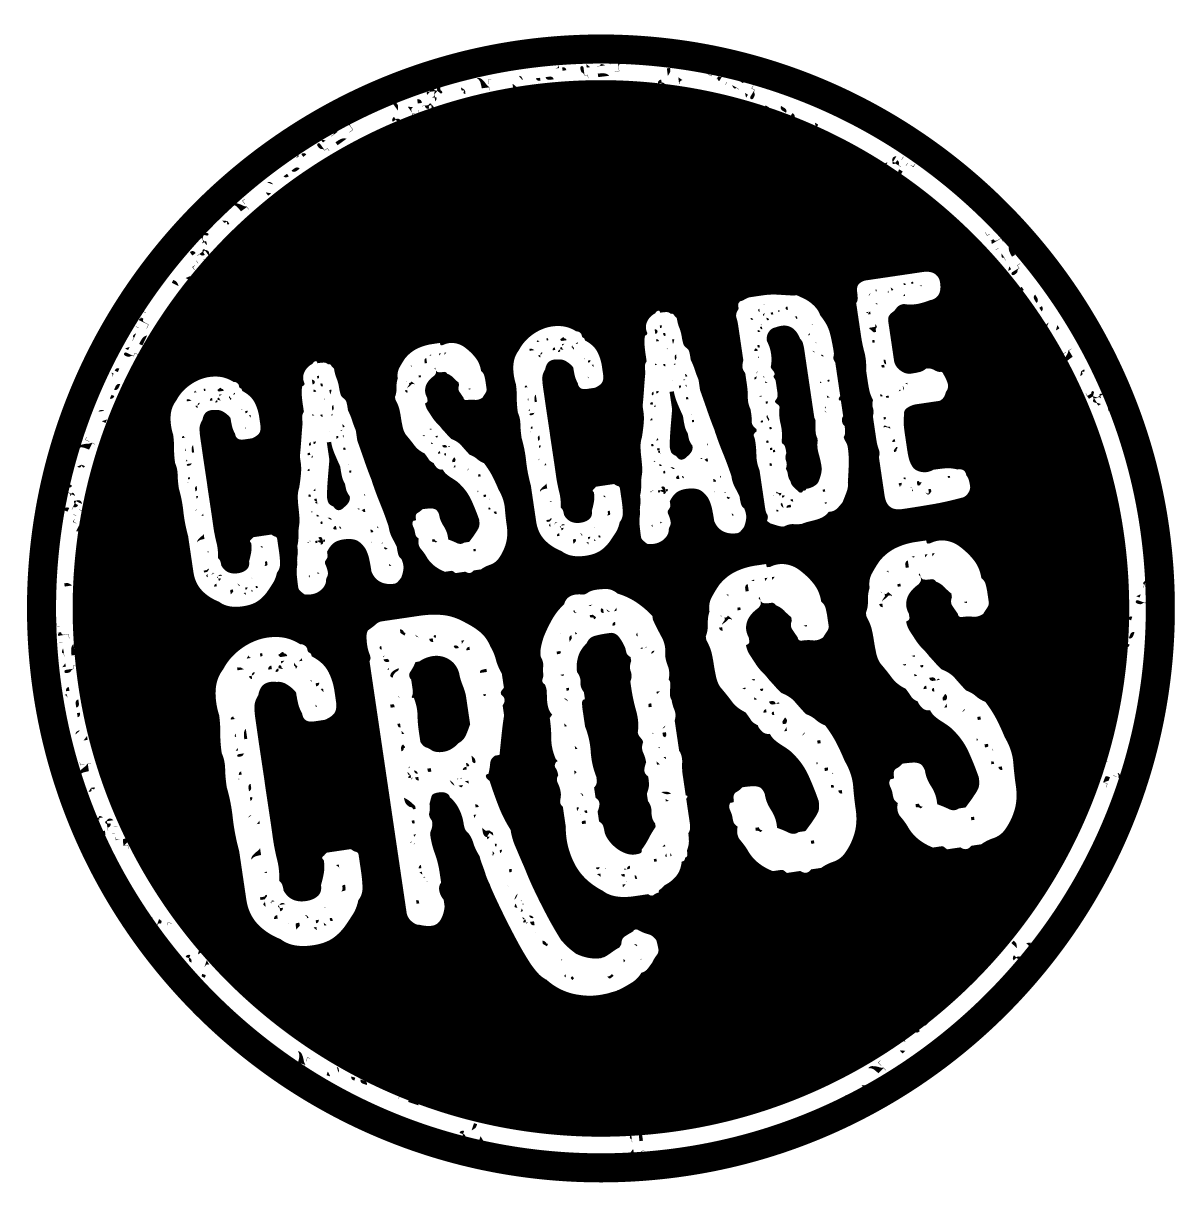 Cascade Cross